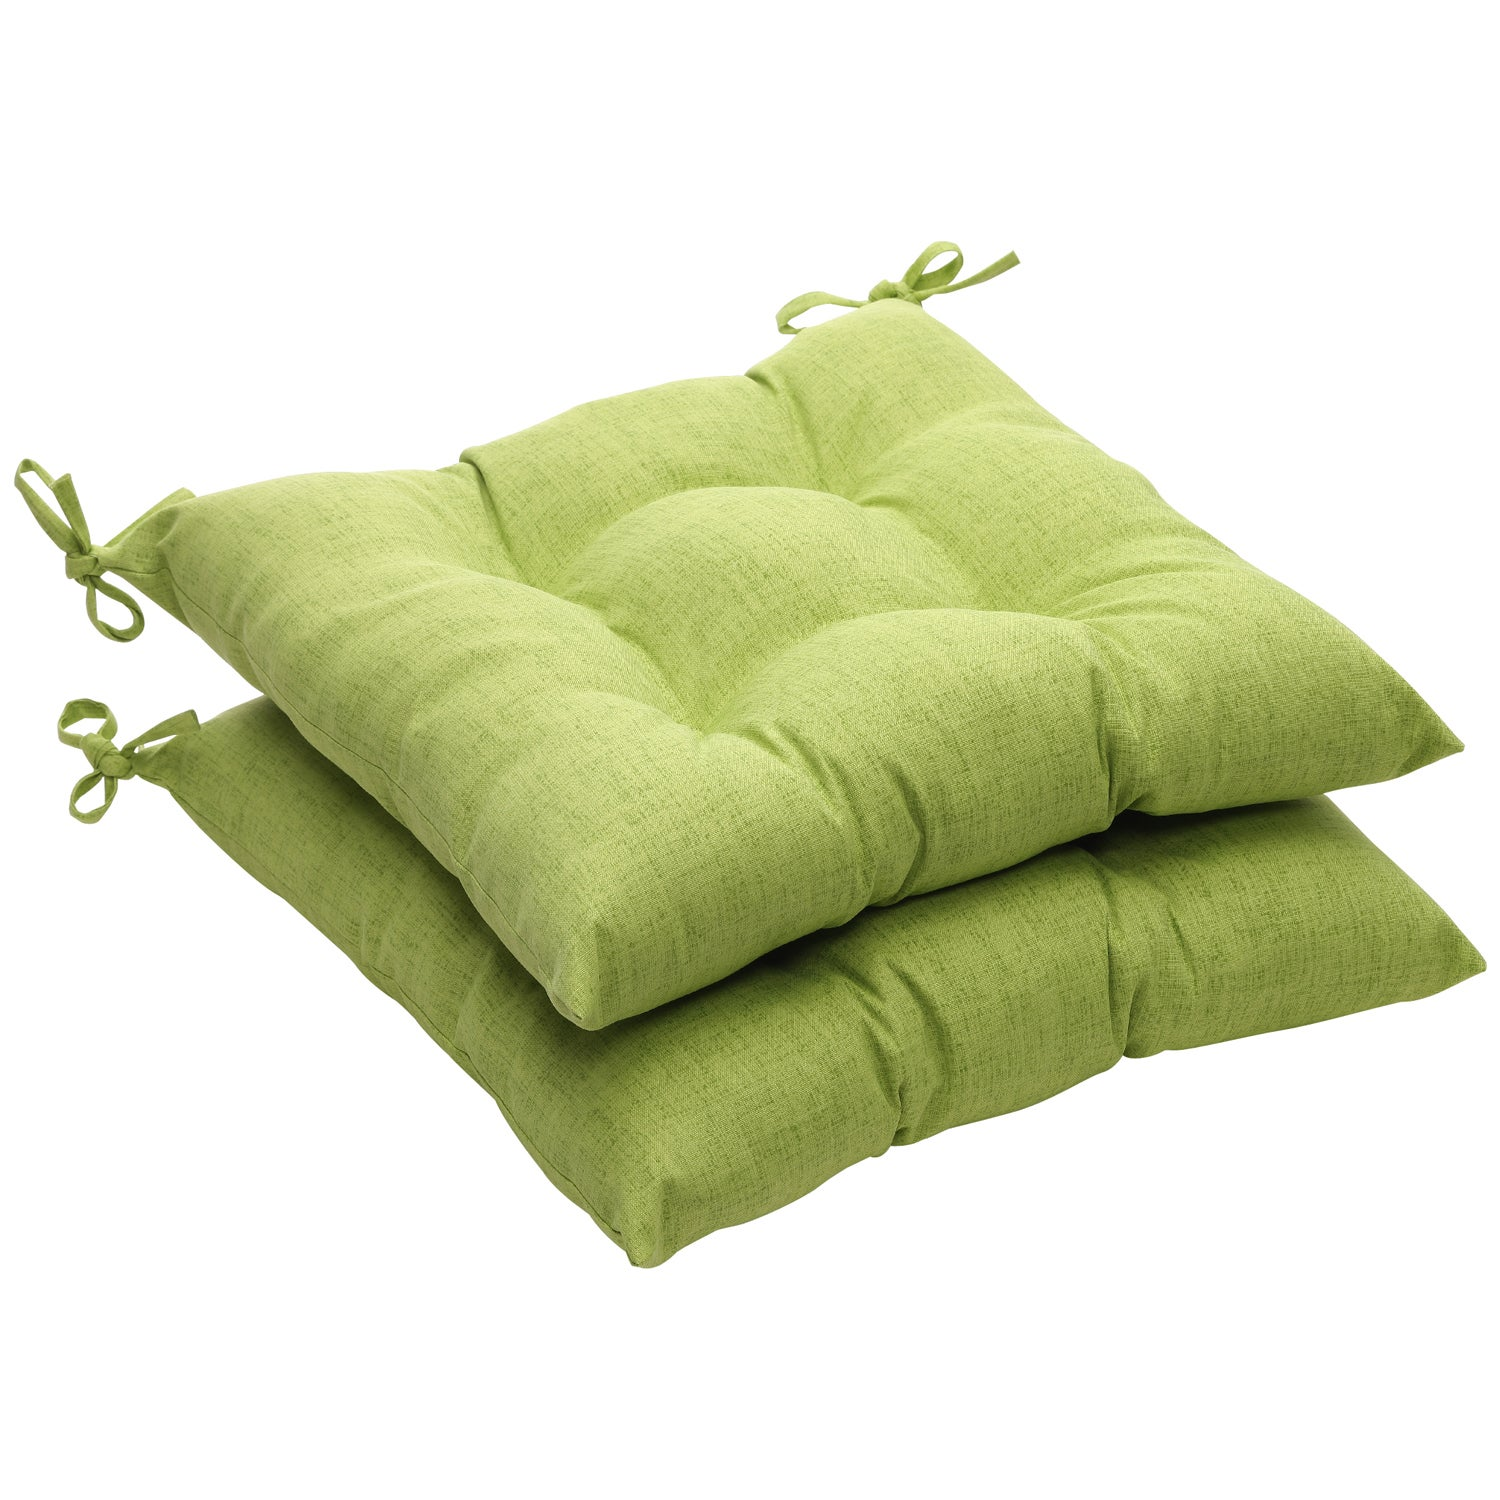 Solid Green Textured Outdoor Tufted Seat Cushions Set of